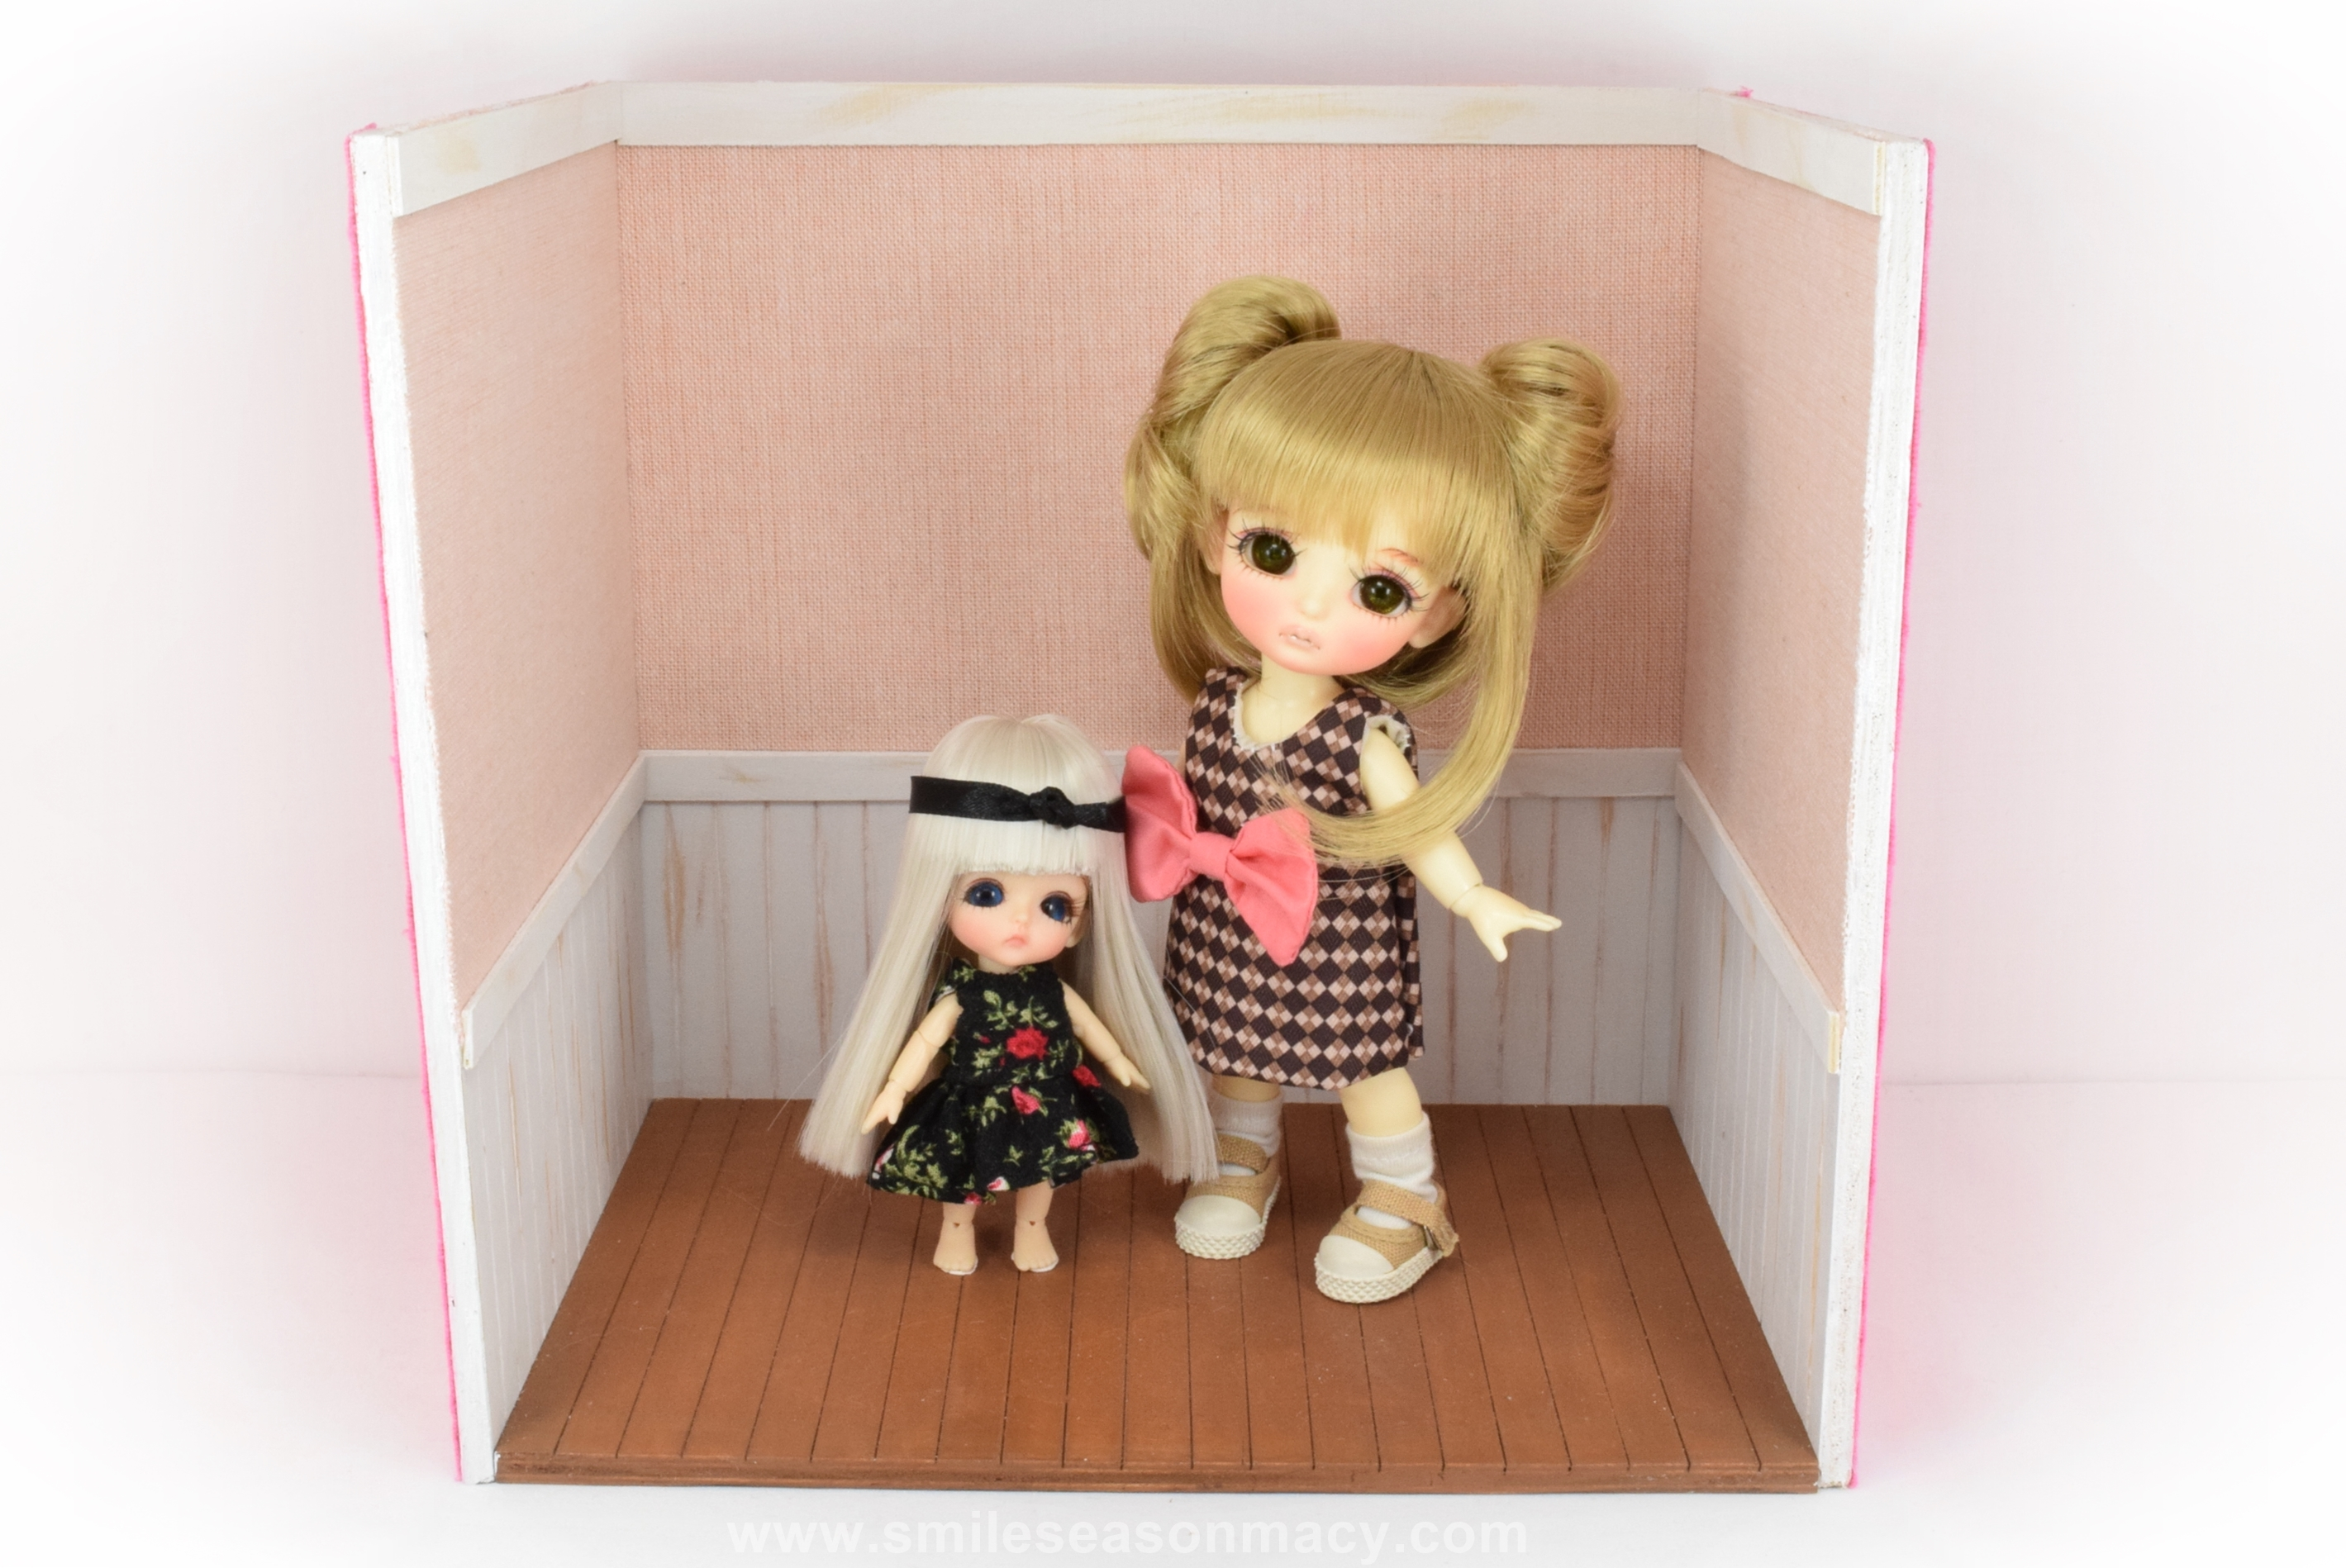 doll house_about 224 x 156 x 212mm (1)